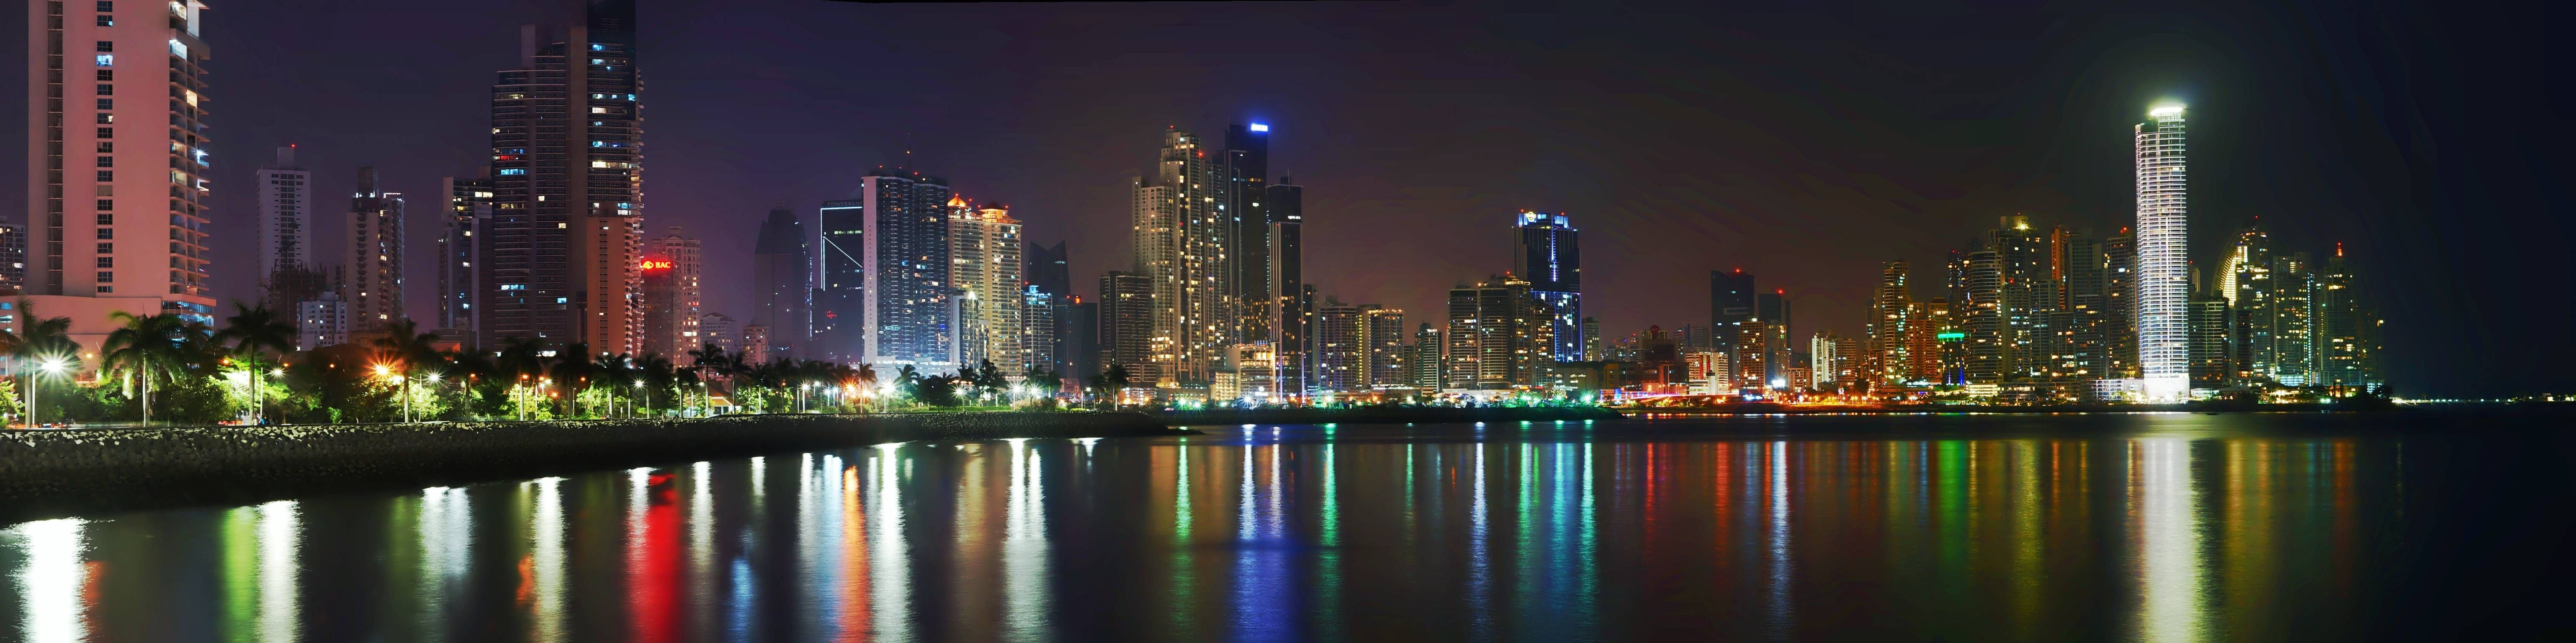 Panamá City Panama panoramic picture at night with view from the Bay.